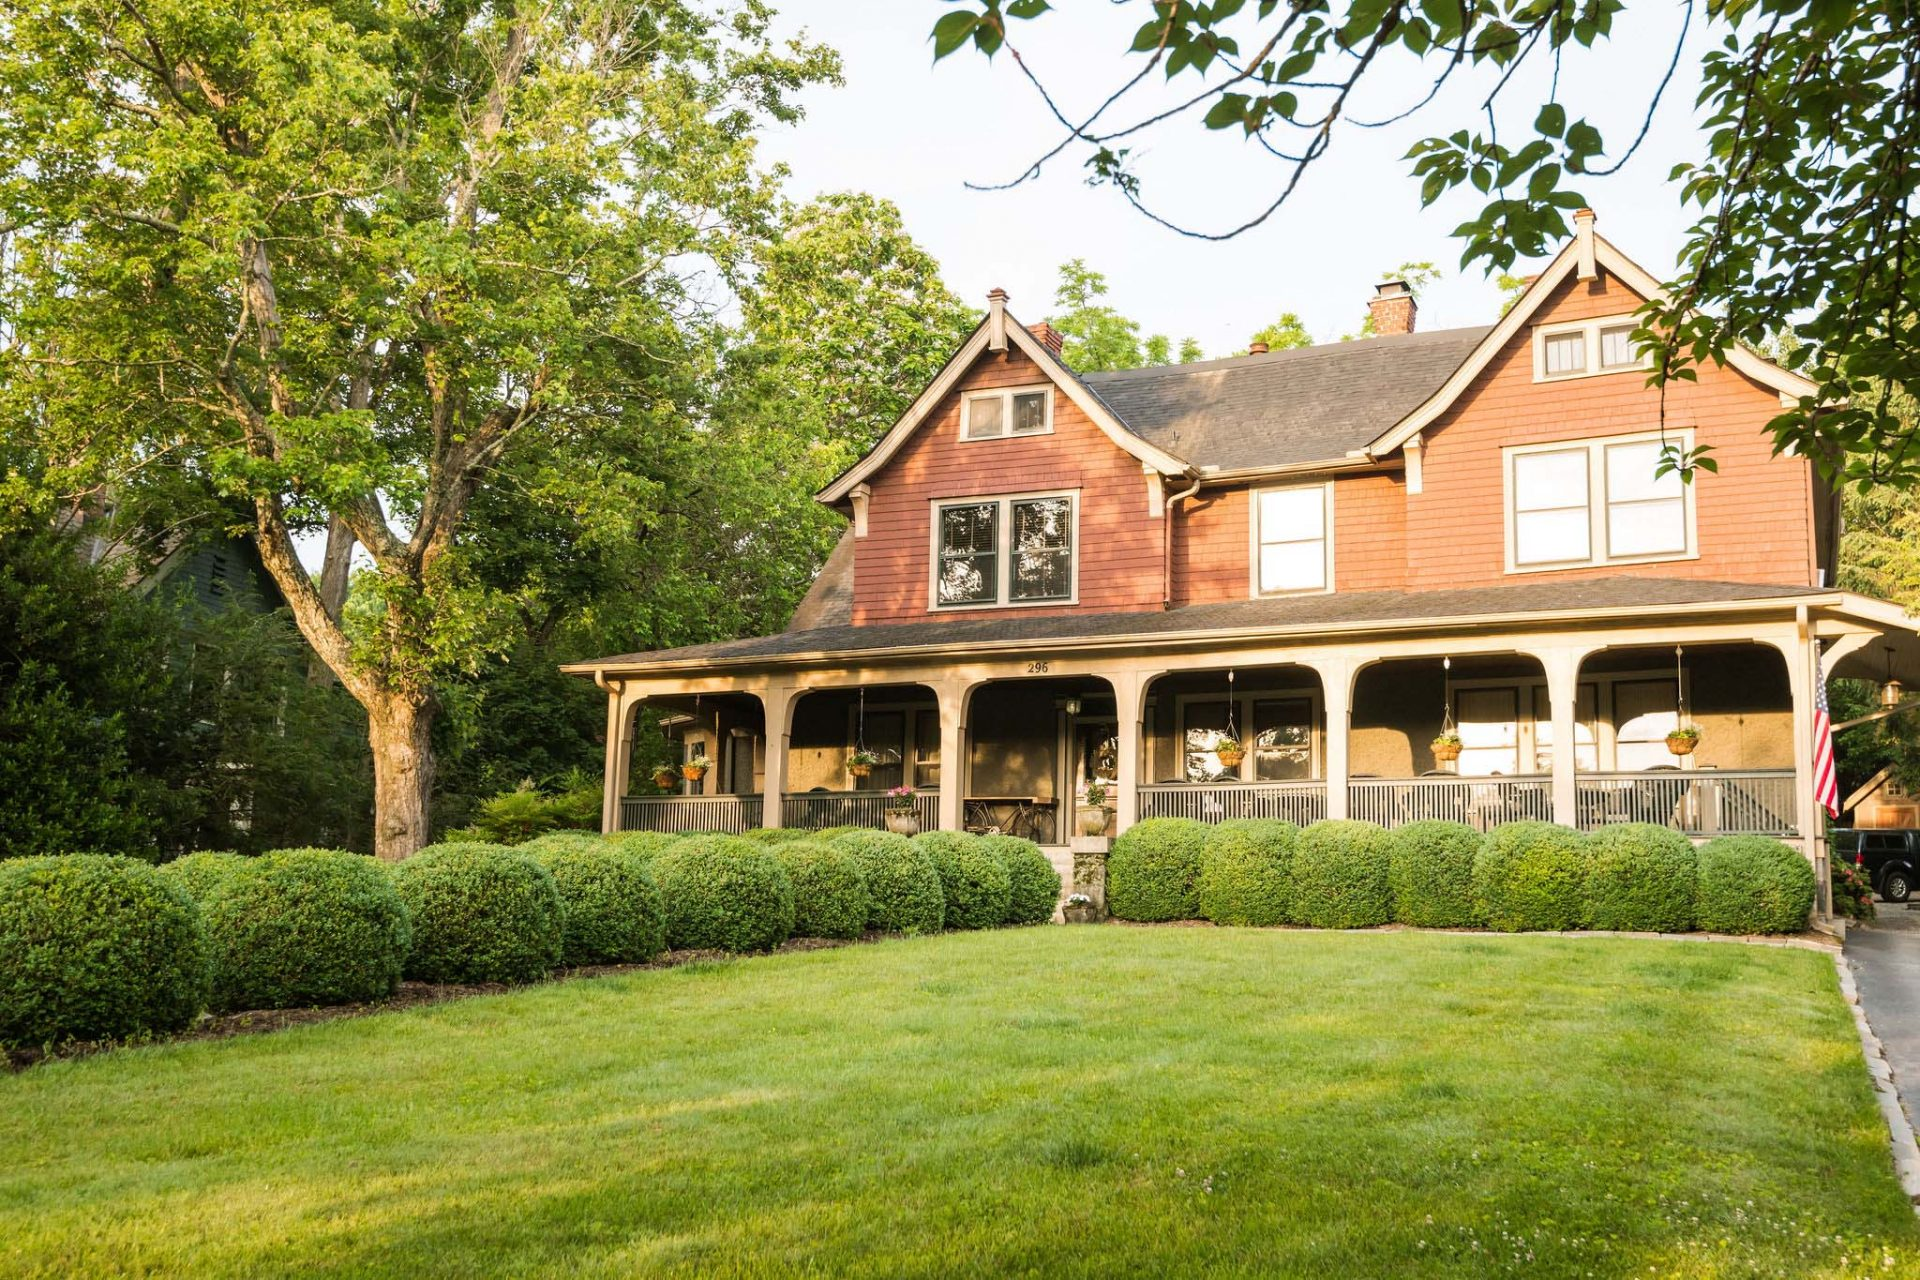 The front facade of the Asheville bed and breakfast. A grass front yard with two rows of round ball bushes. A long, arched porch with planters hanging from the arches.